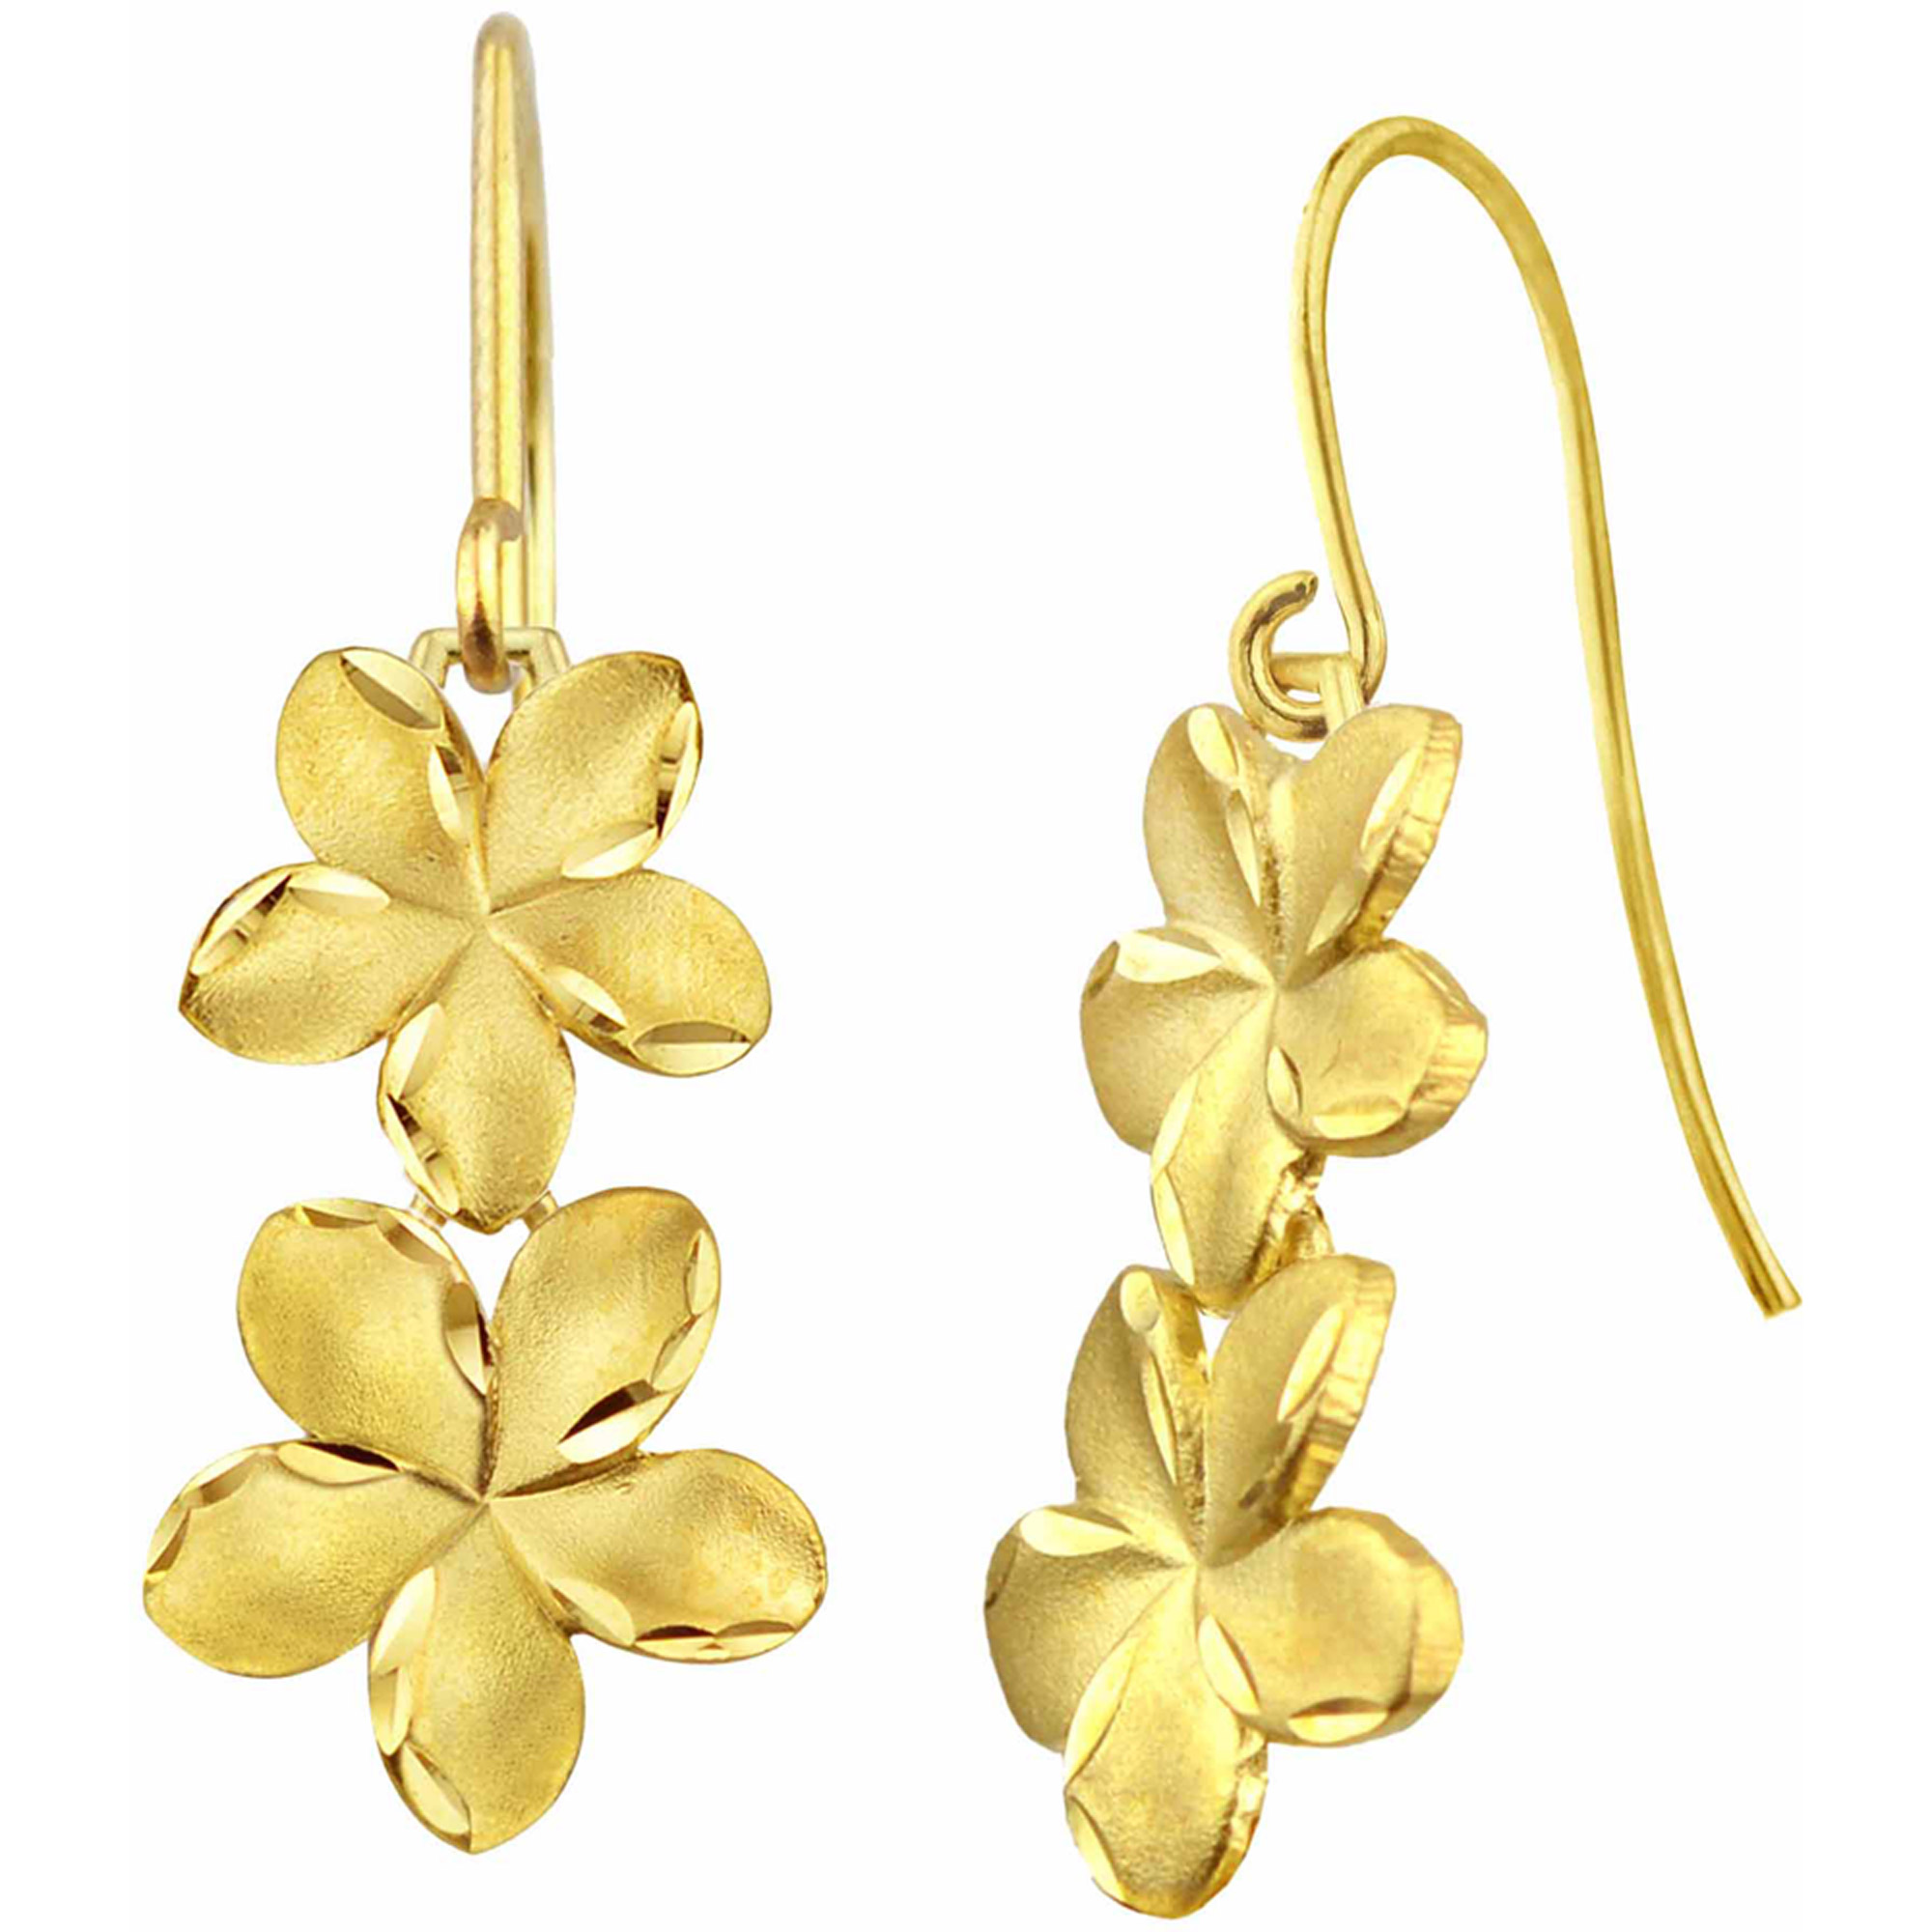 US GOLD 10kt Gold Satin and Diamond-Cut Plumeria Drop Earrings